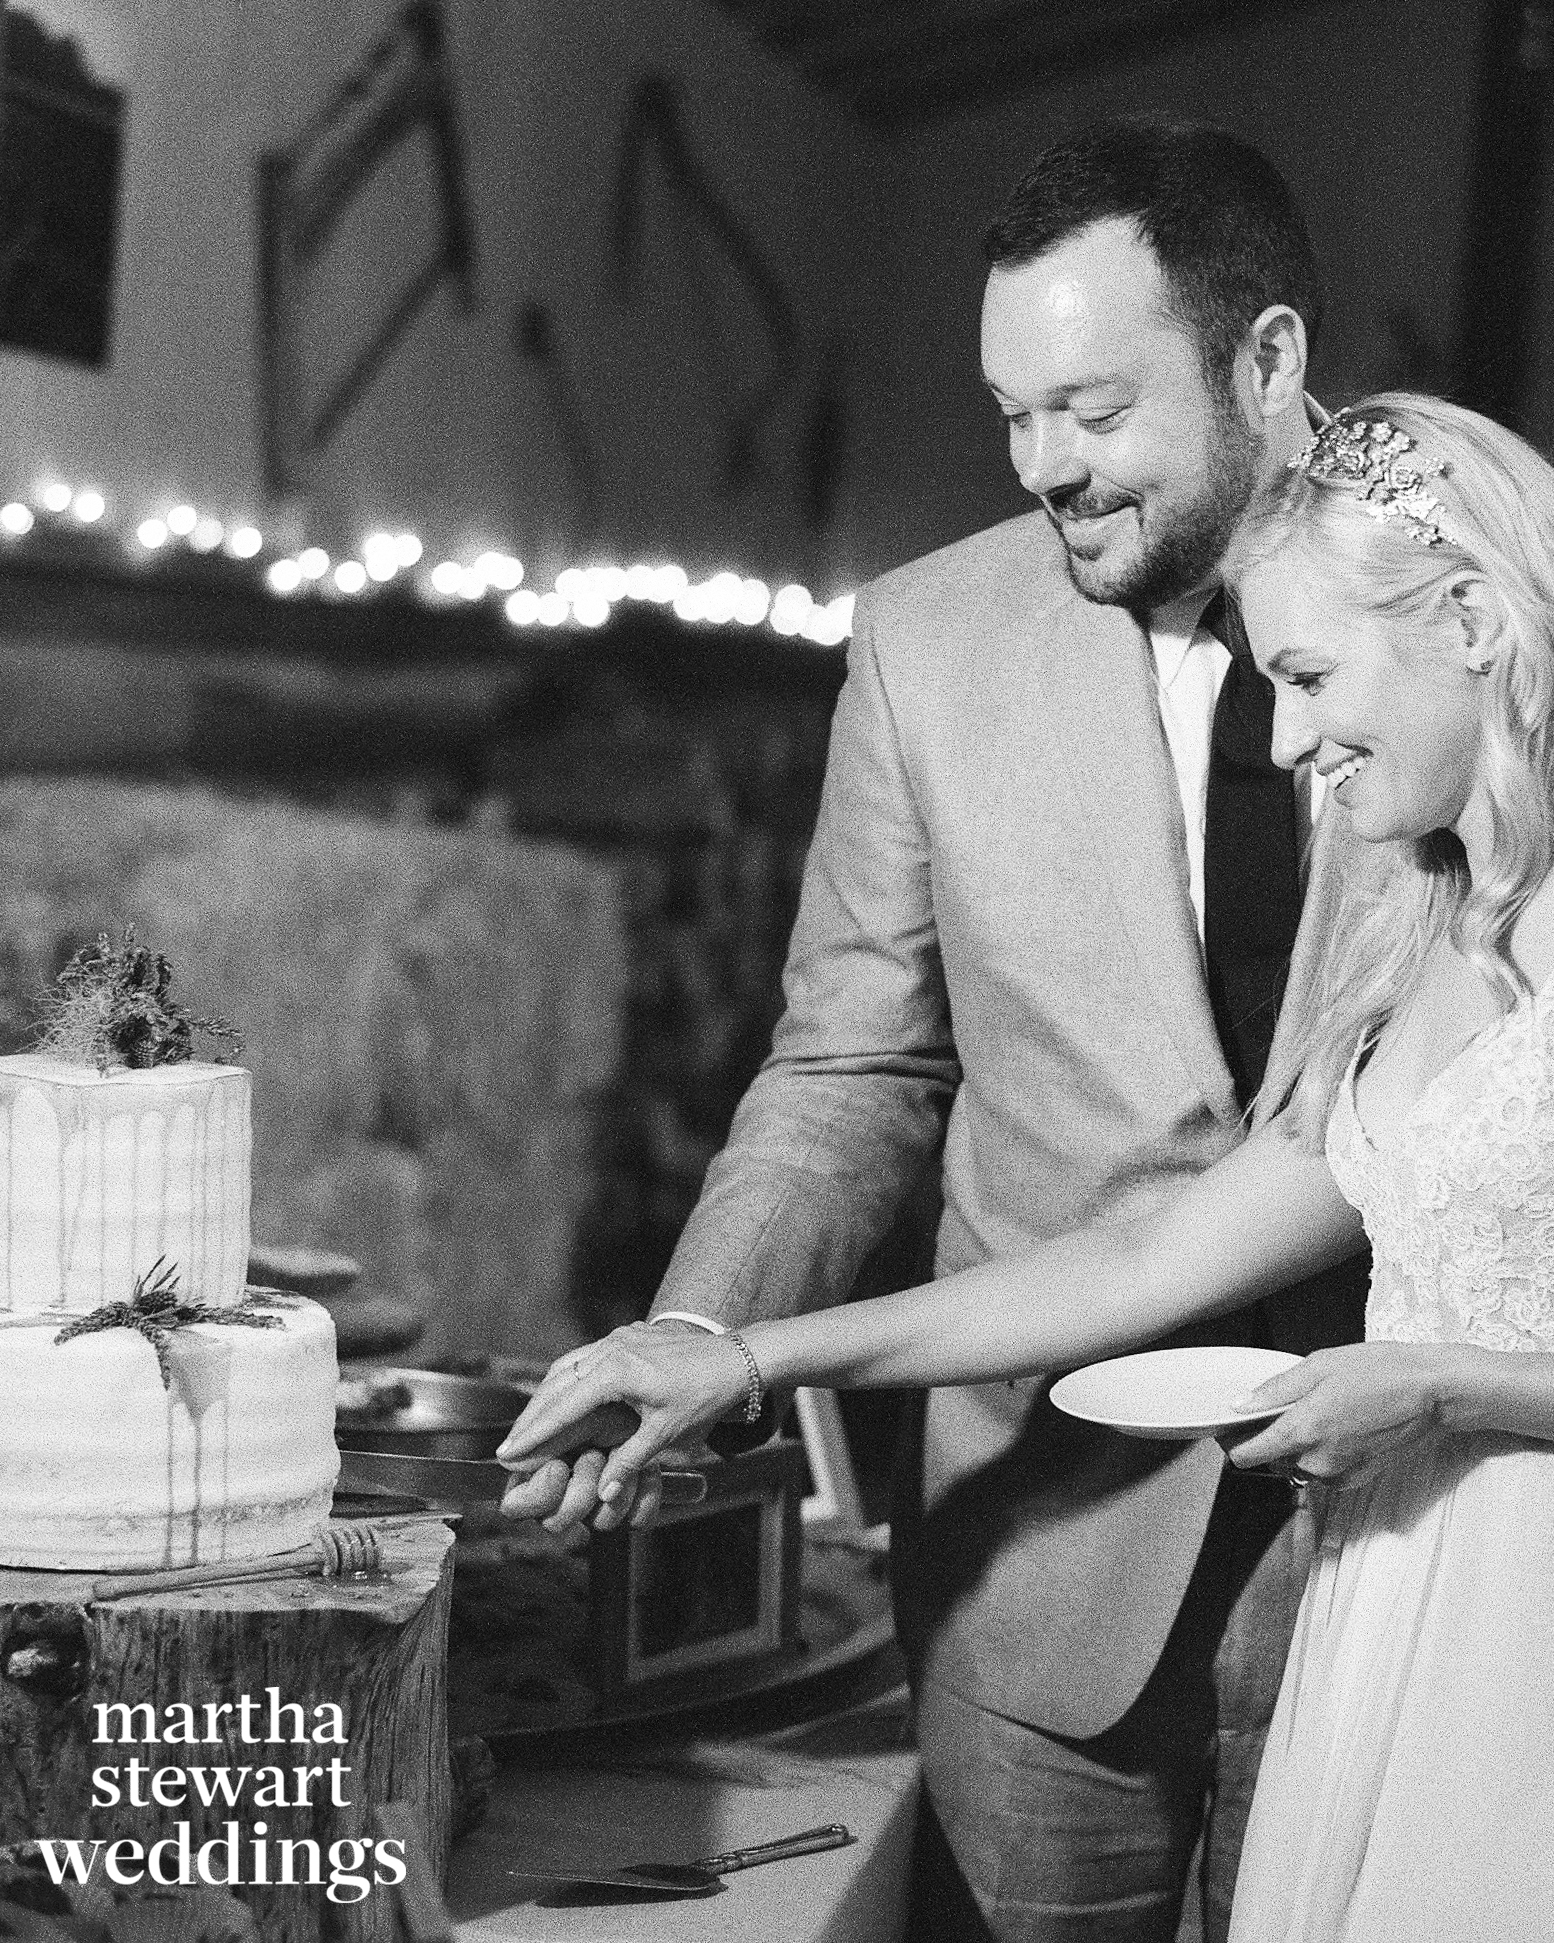 beth behrs michael gladis wedding cake cutting sylvie gil